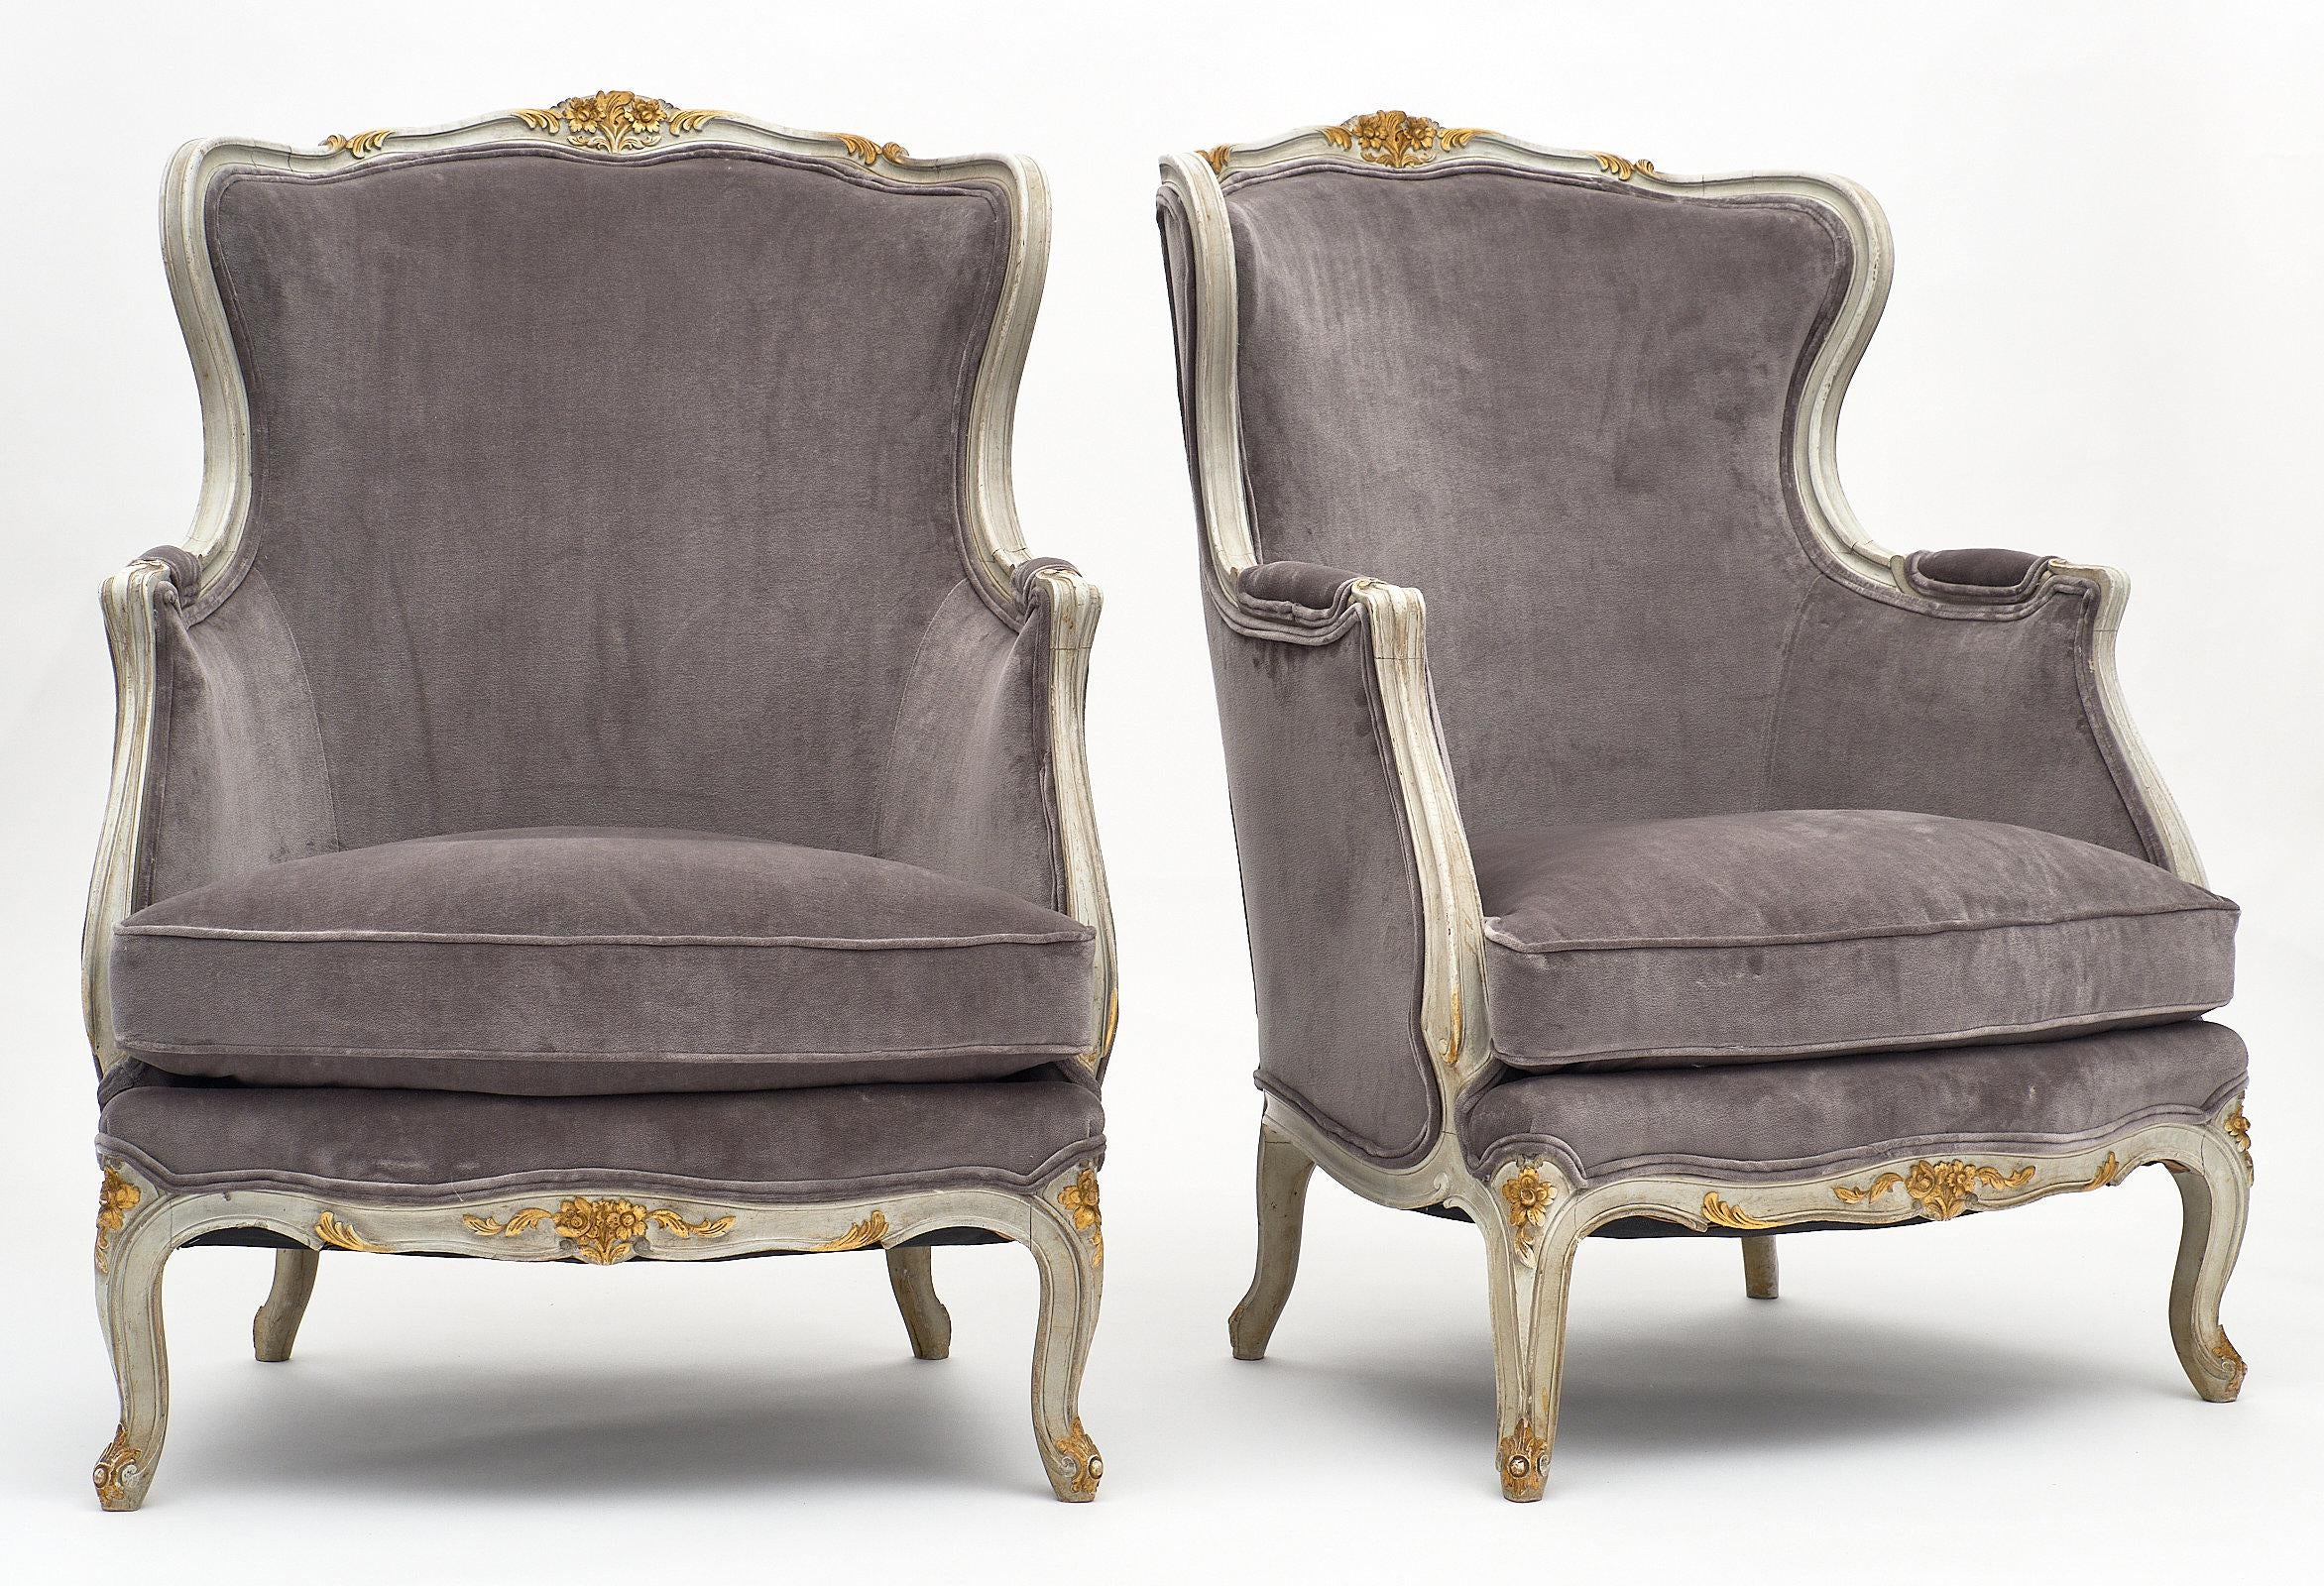 french bergere chair club chairs on casters incredible louis xv style a pair decaso for sale image 3 of